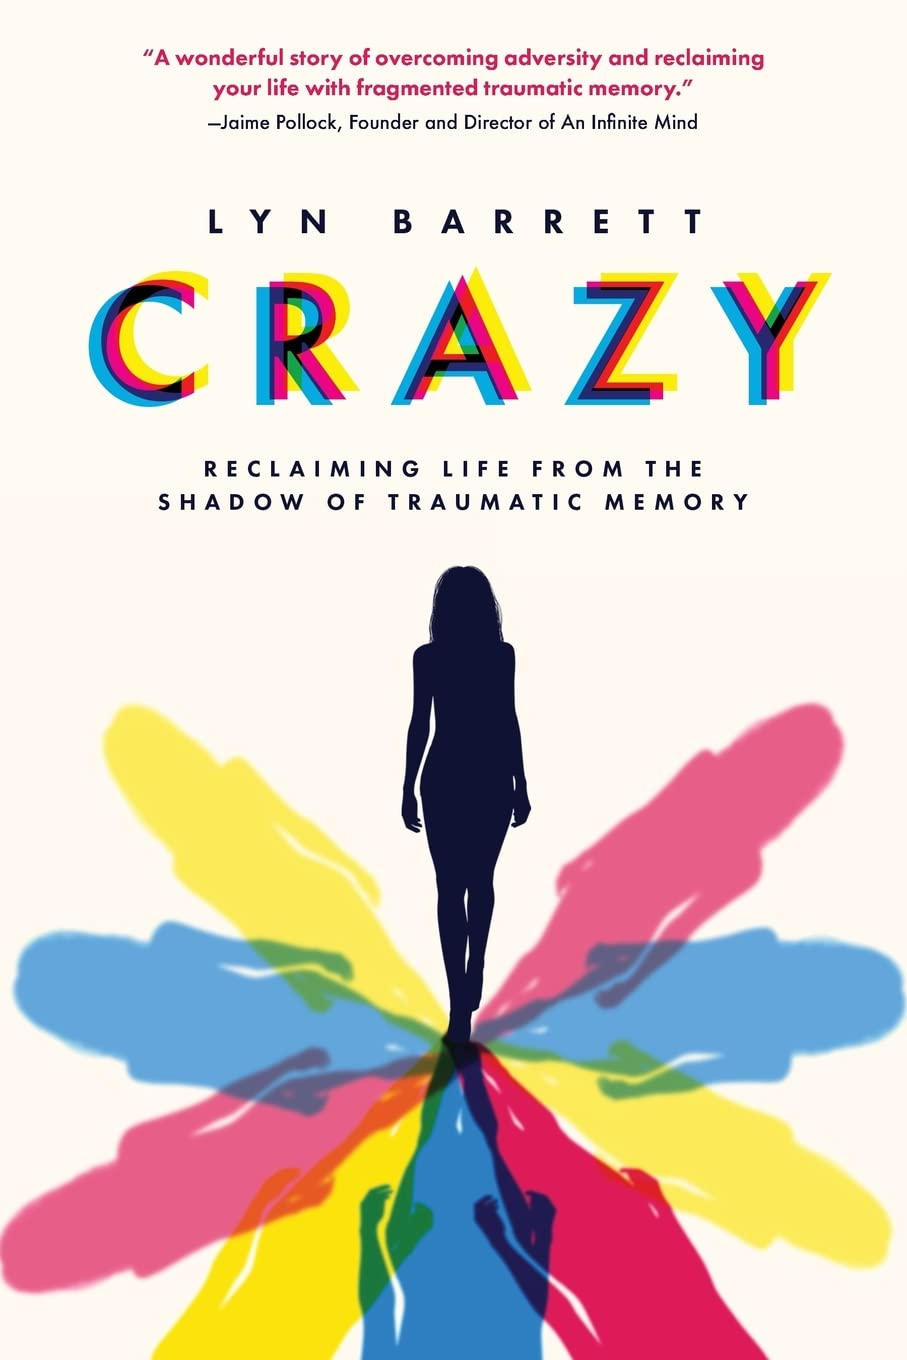 Crazy: Reclaiming Life from the Shadow of Traumatic Memory